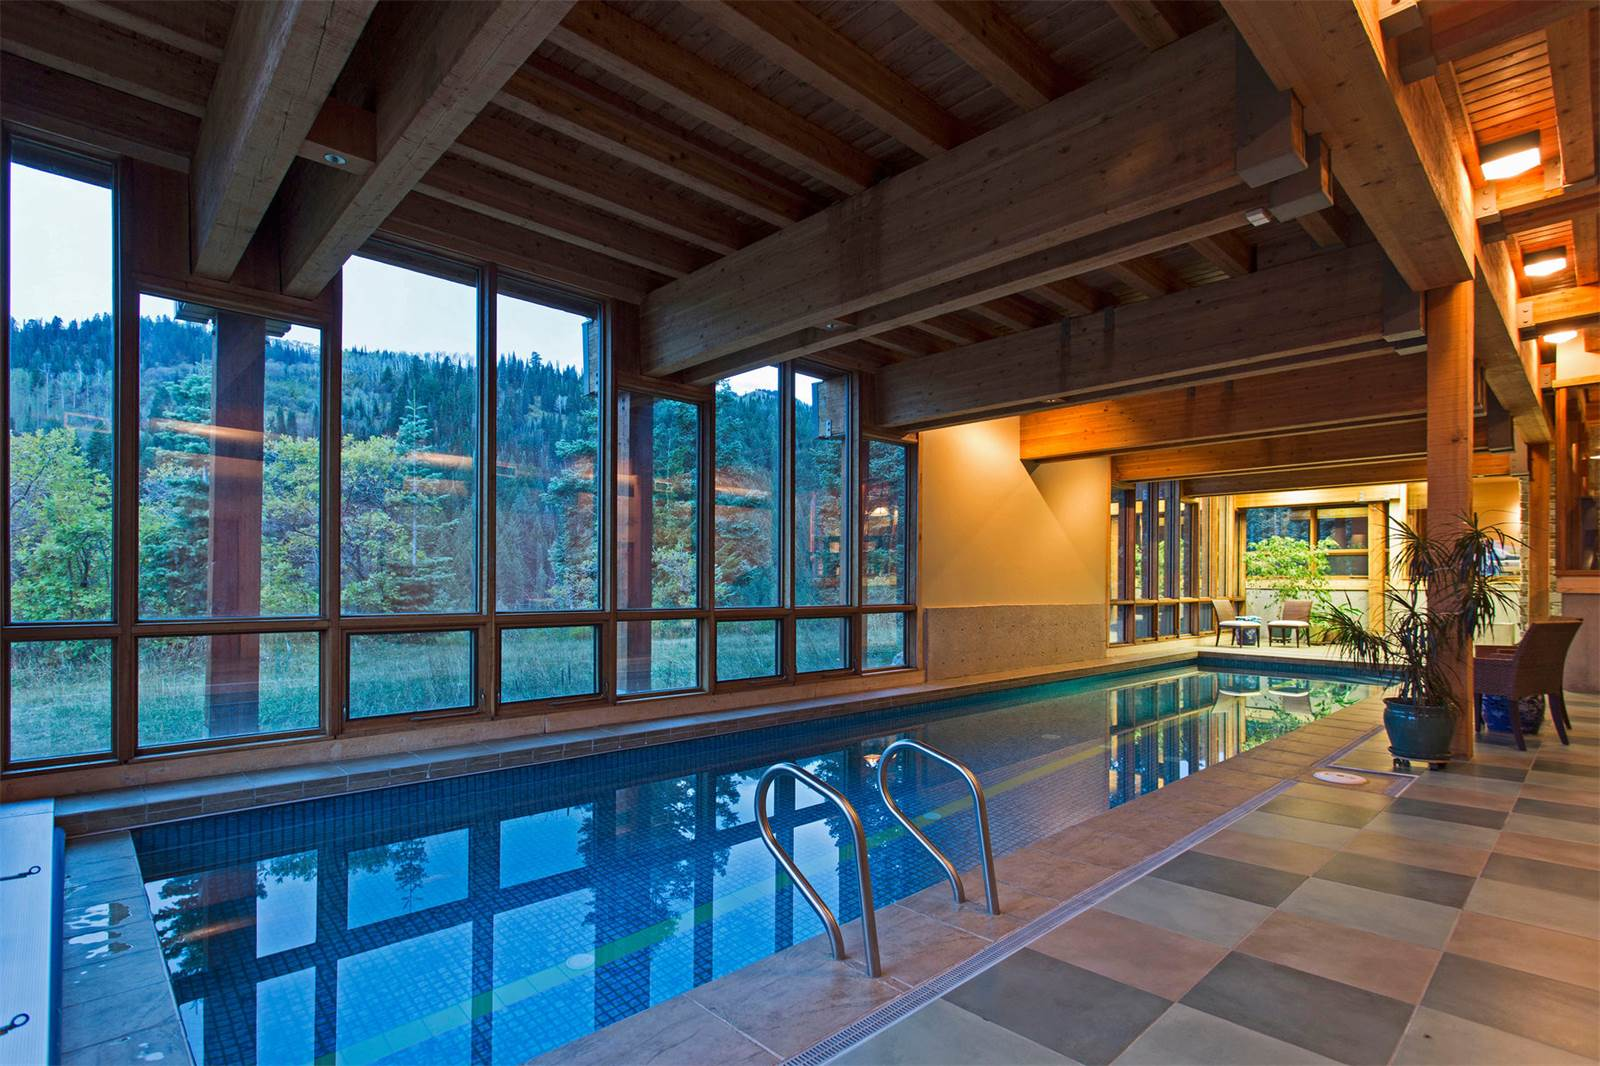 5 Houses With Indoor Pools You Can Buy Now | Summit ...